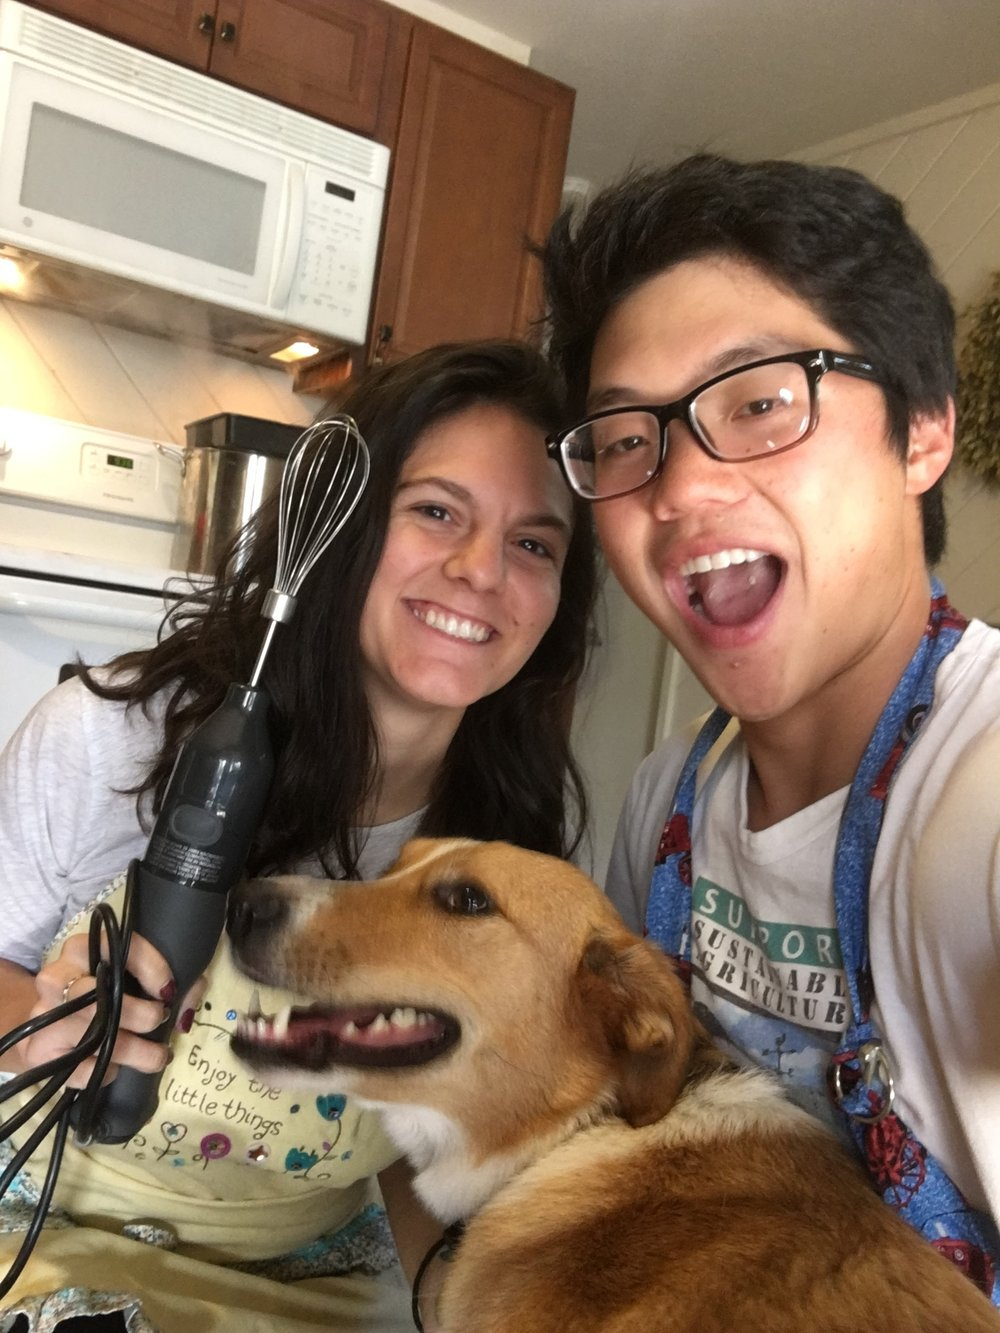 Gracie helping us bake cookies! Us learning that selfies with 2 people plus a dog is hard.